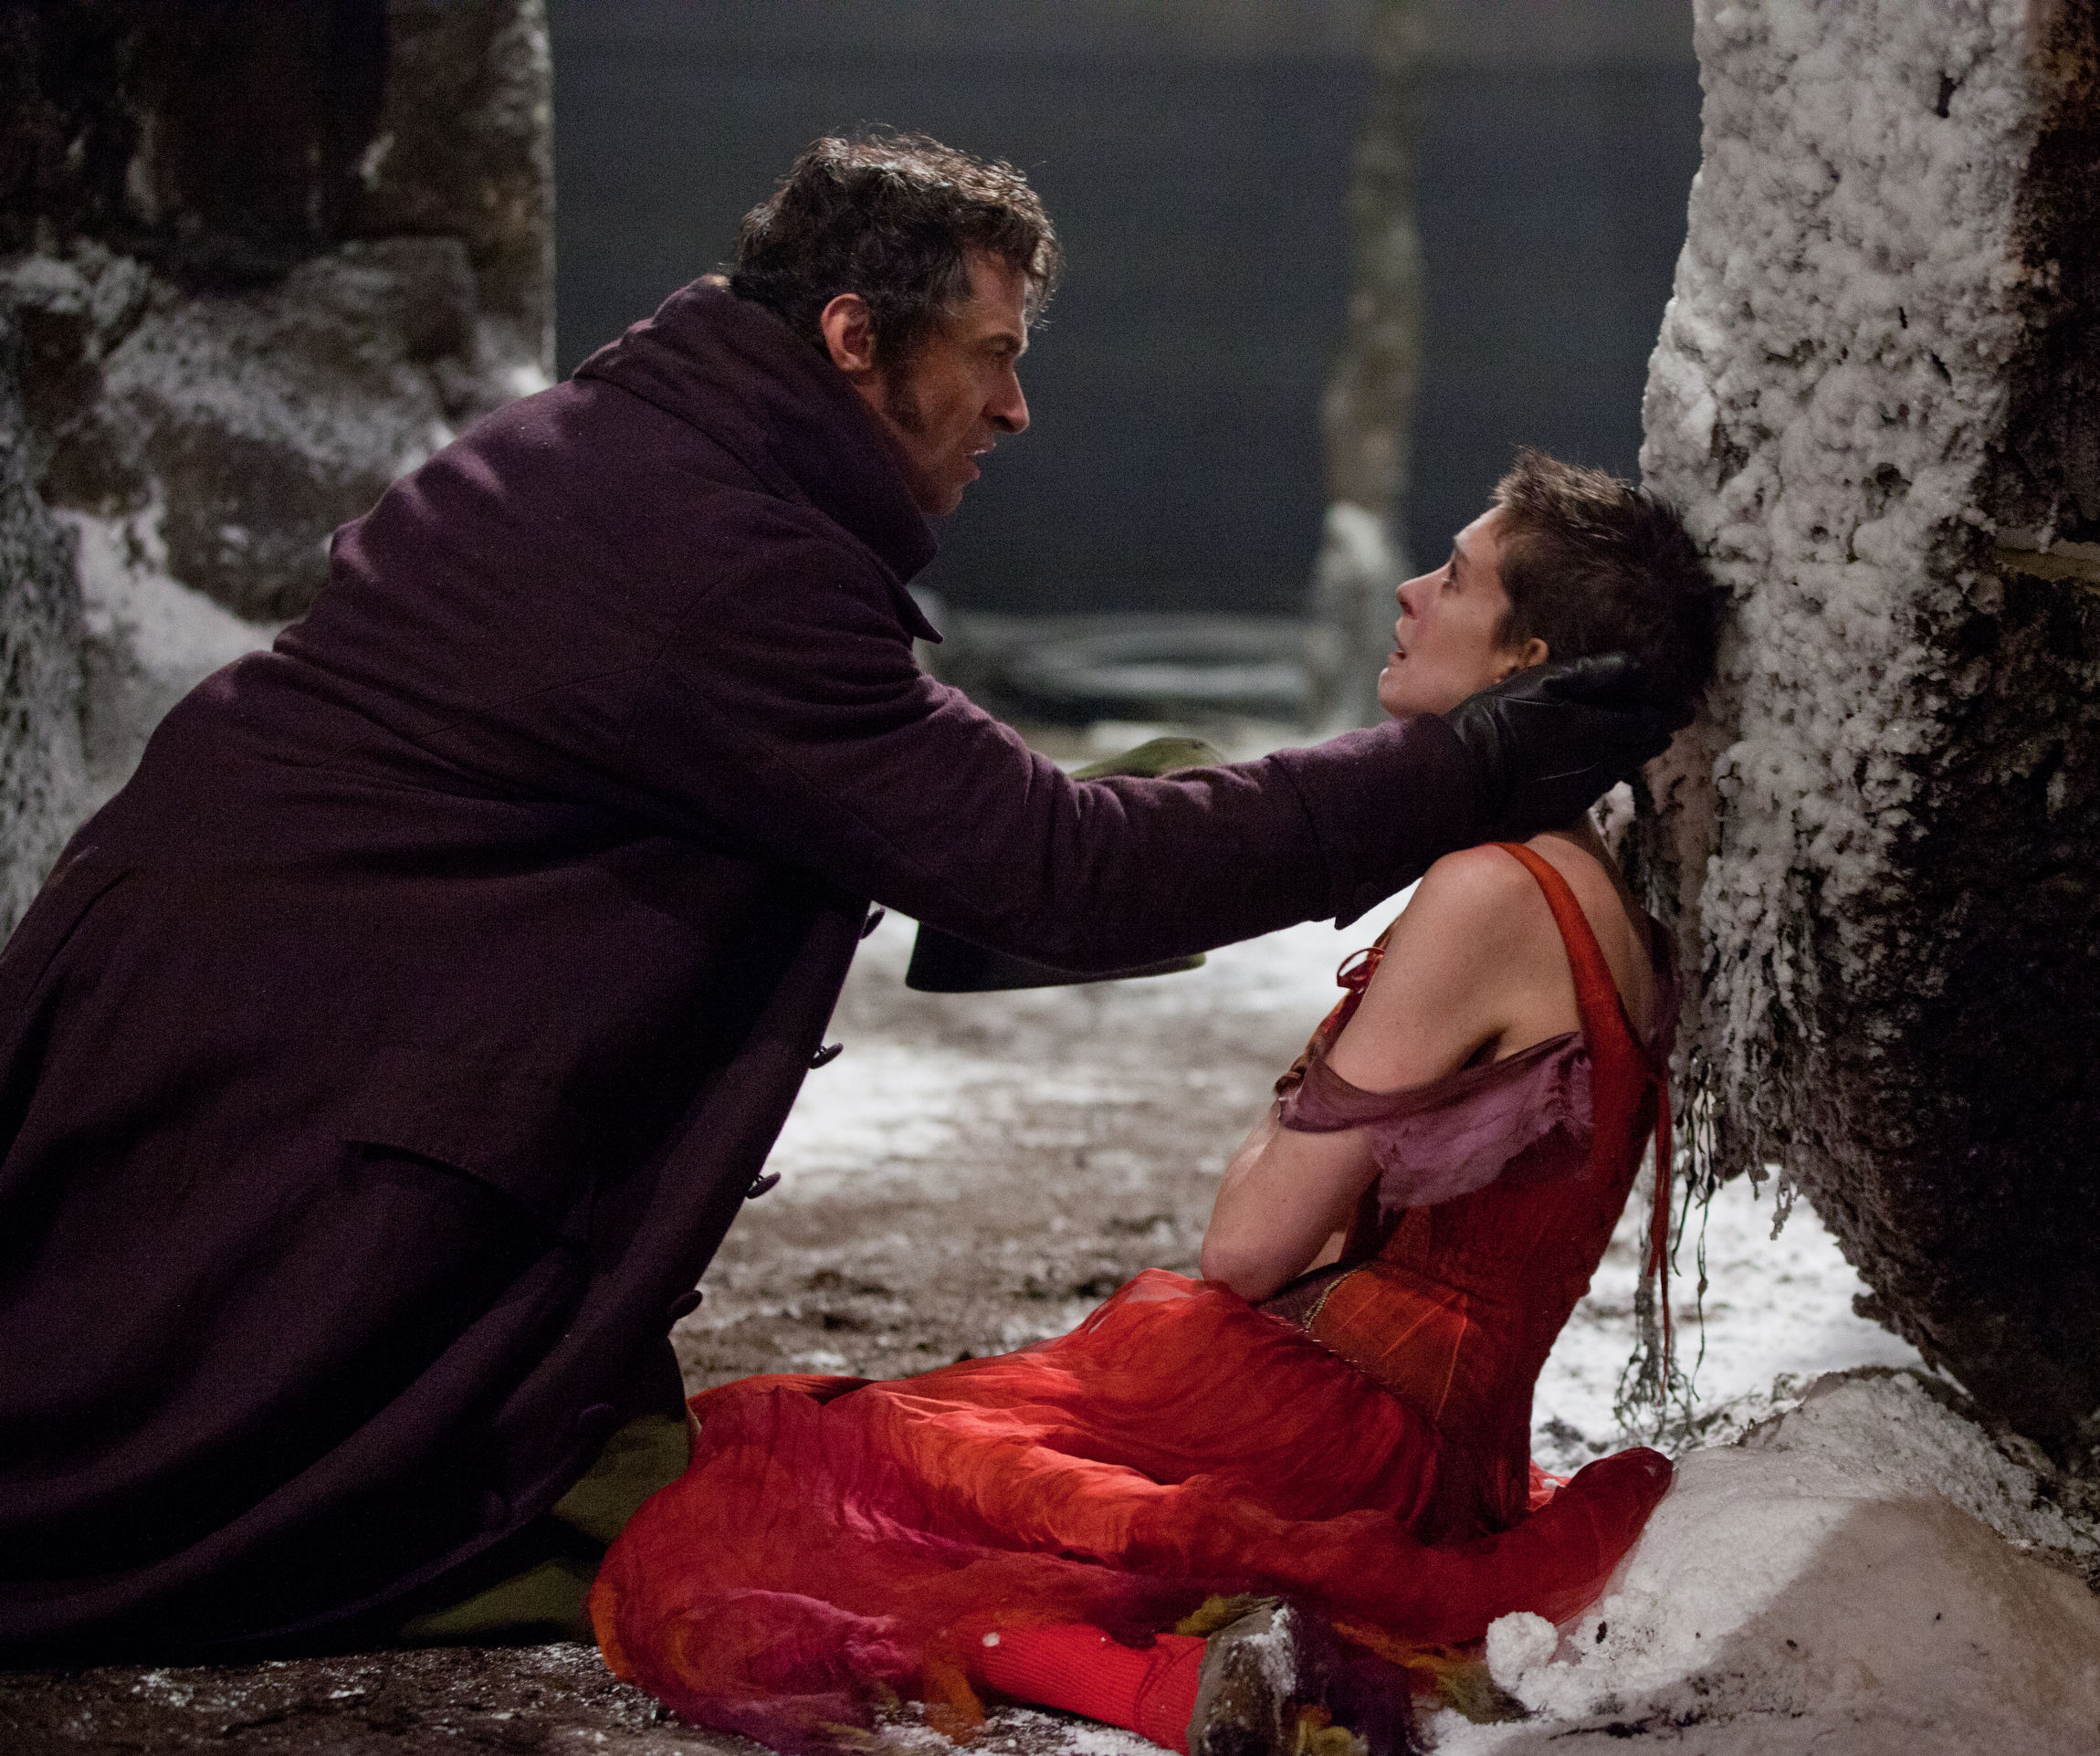 SCENE FROM MOVIE 'LES MISERABLES'